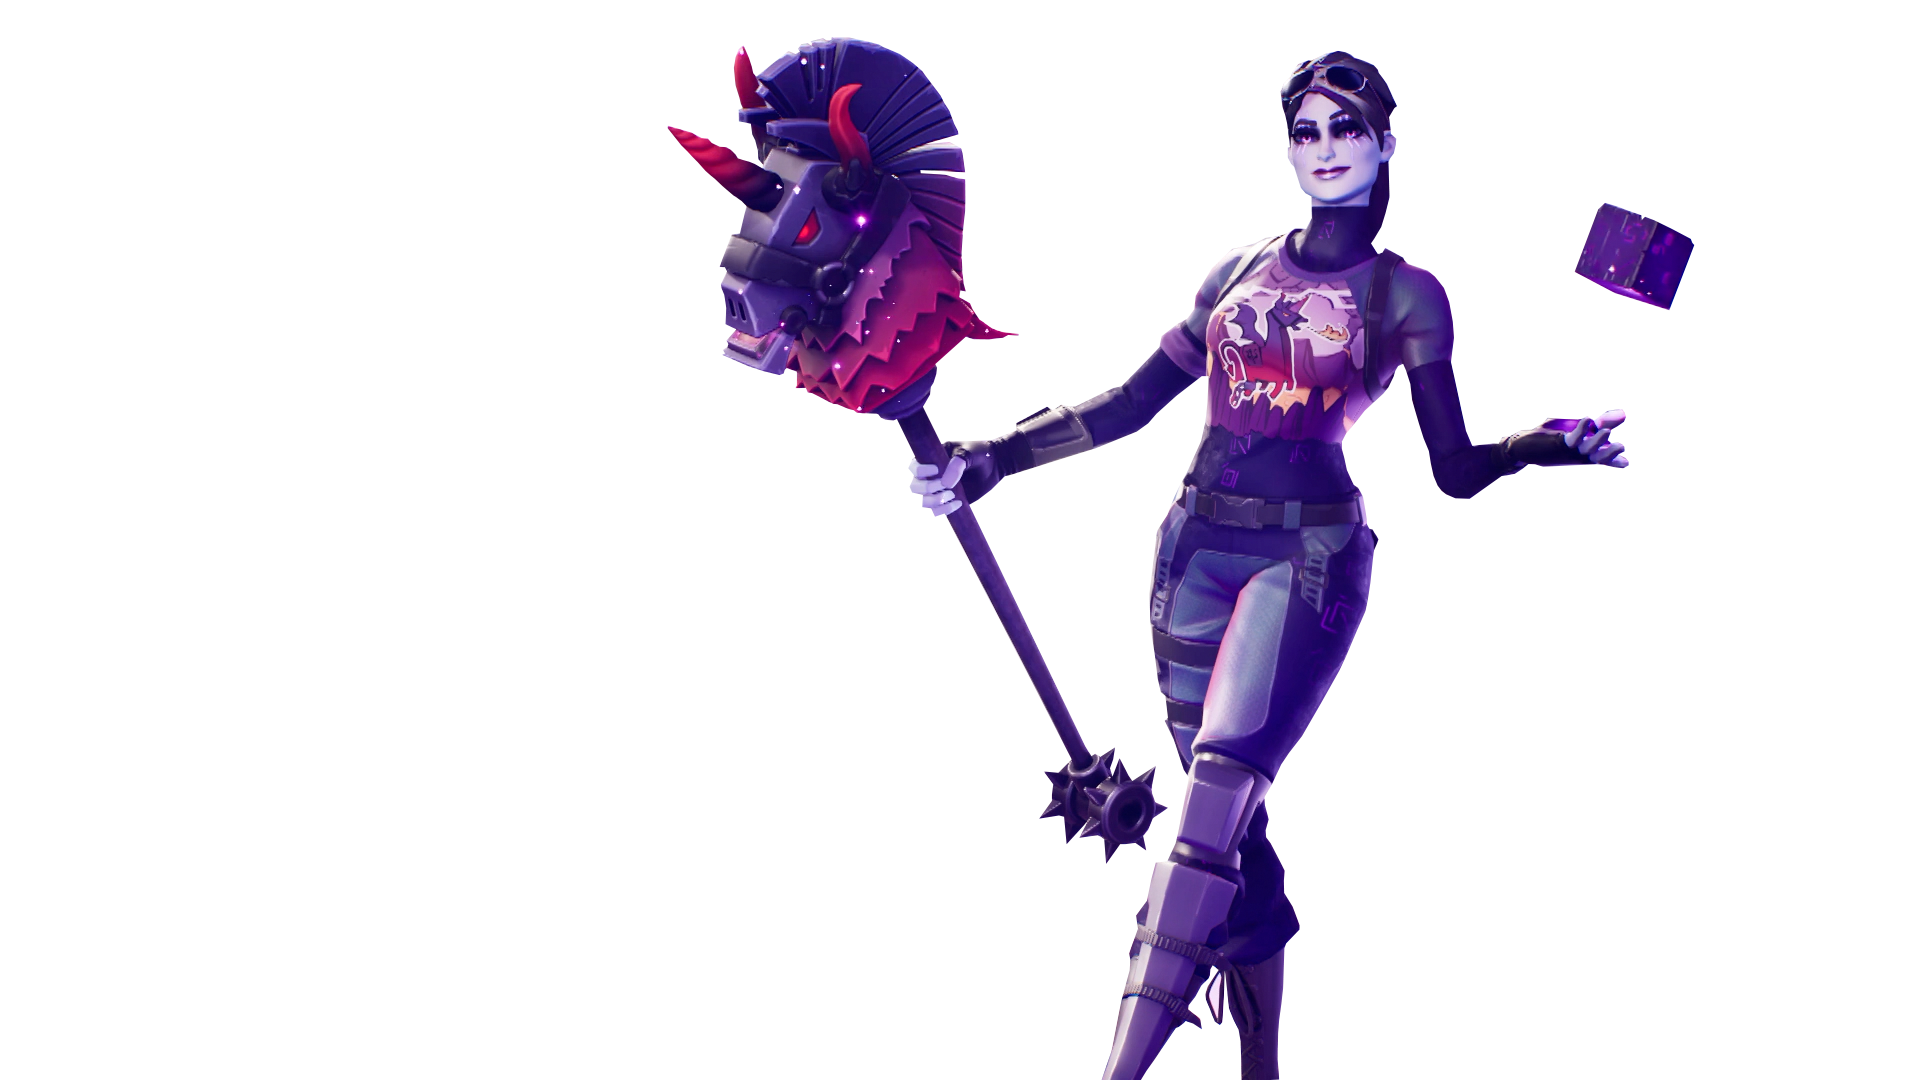 Fortnite Dark Bomber Skin with Cube in her Hands PNG Image.